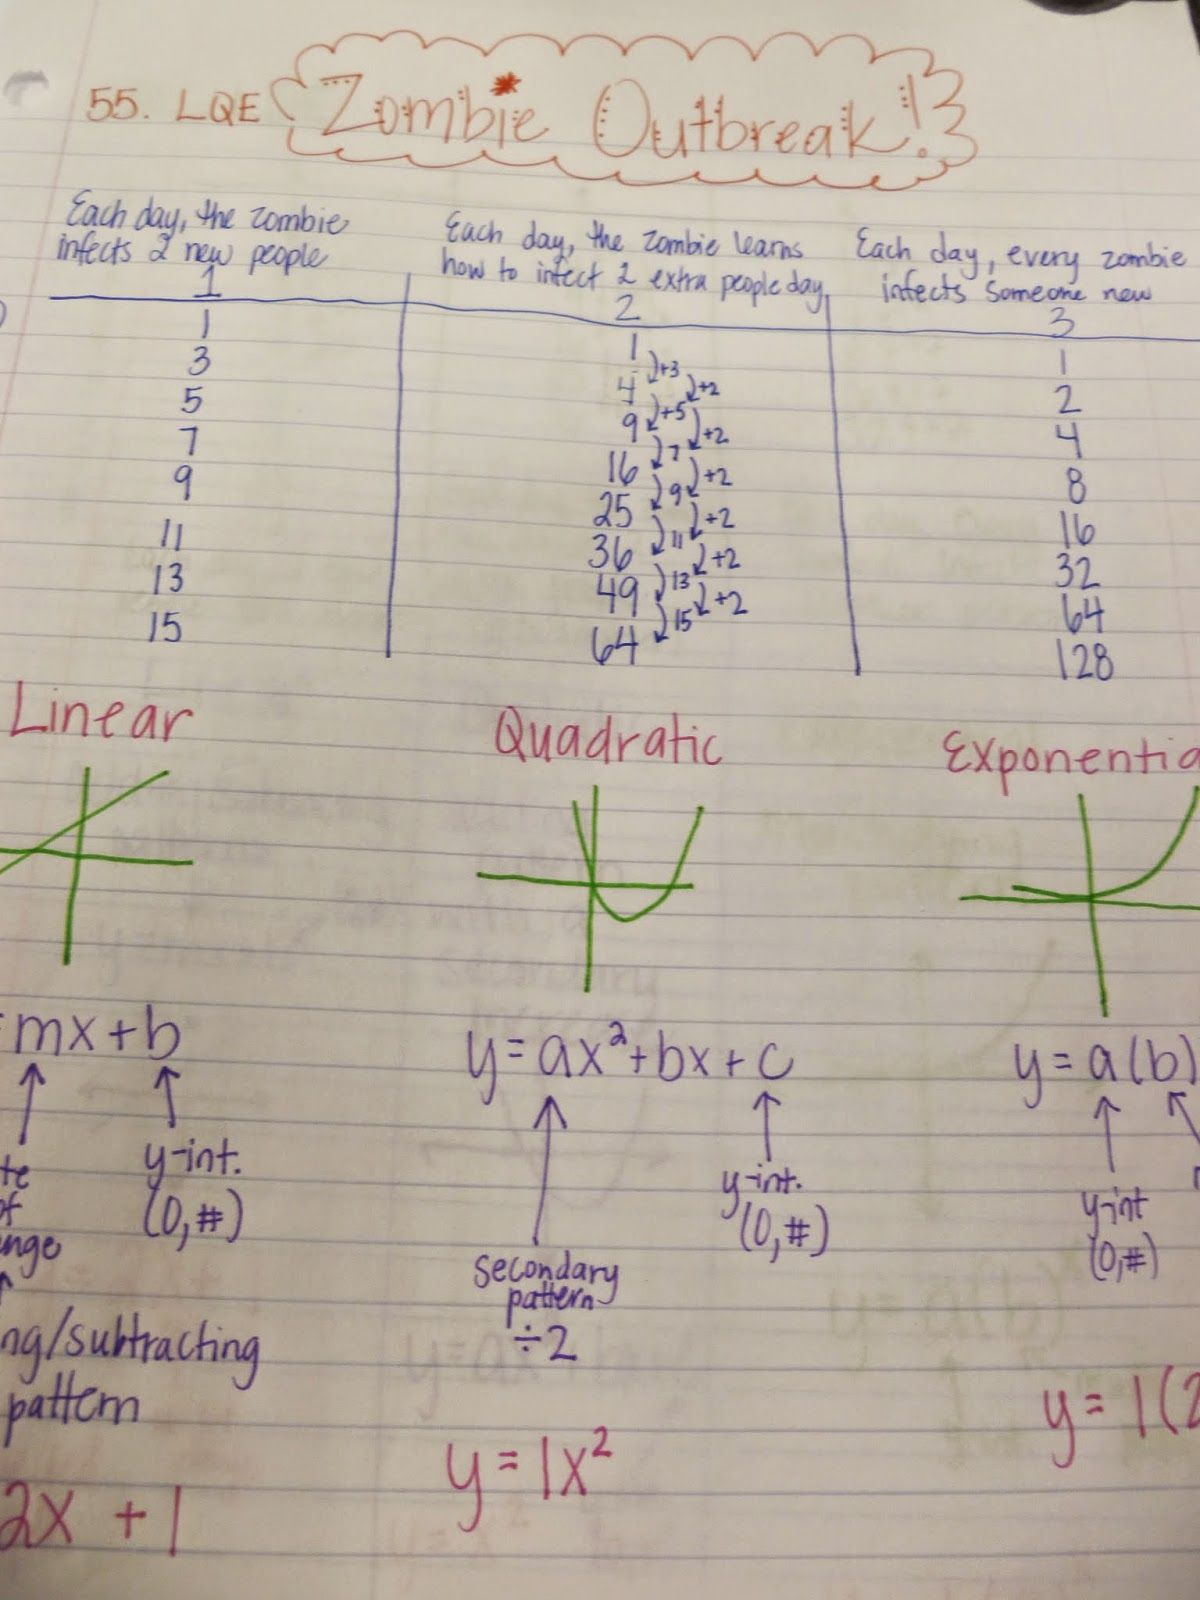 Free Worksheet Linear And Exponential Functions Worksheets 17 best images about algebra 1 functions on pinterest activities exponential growth and student